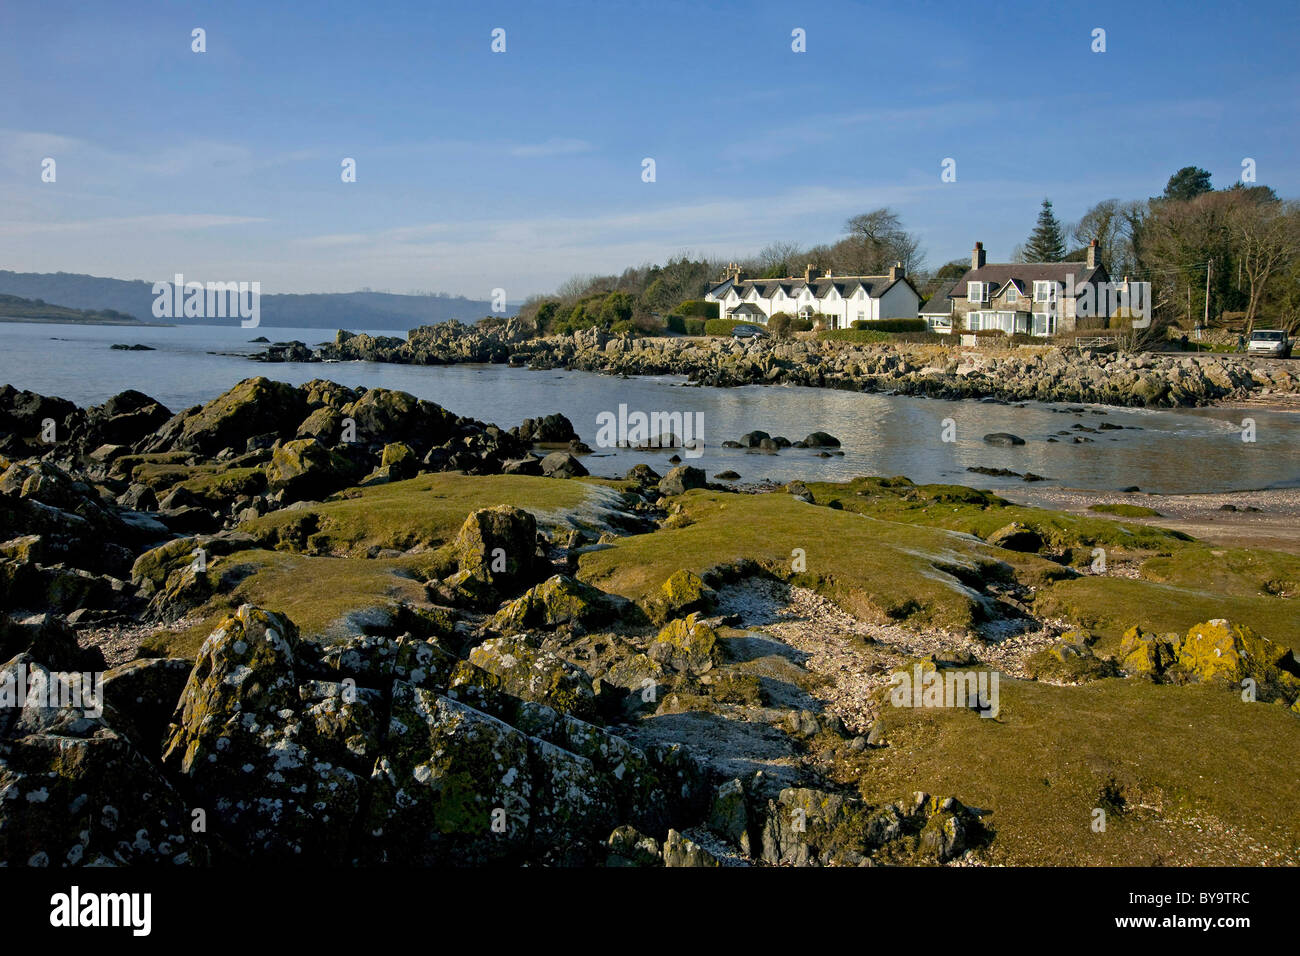 Rockcliffe Beach, Colvend, Solway Firth, Galloway - Stock Image